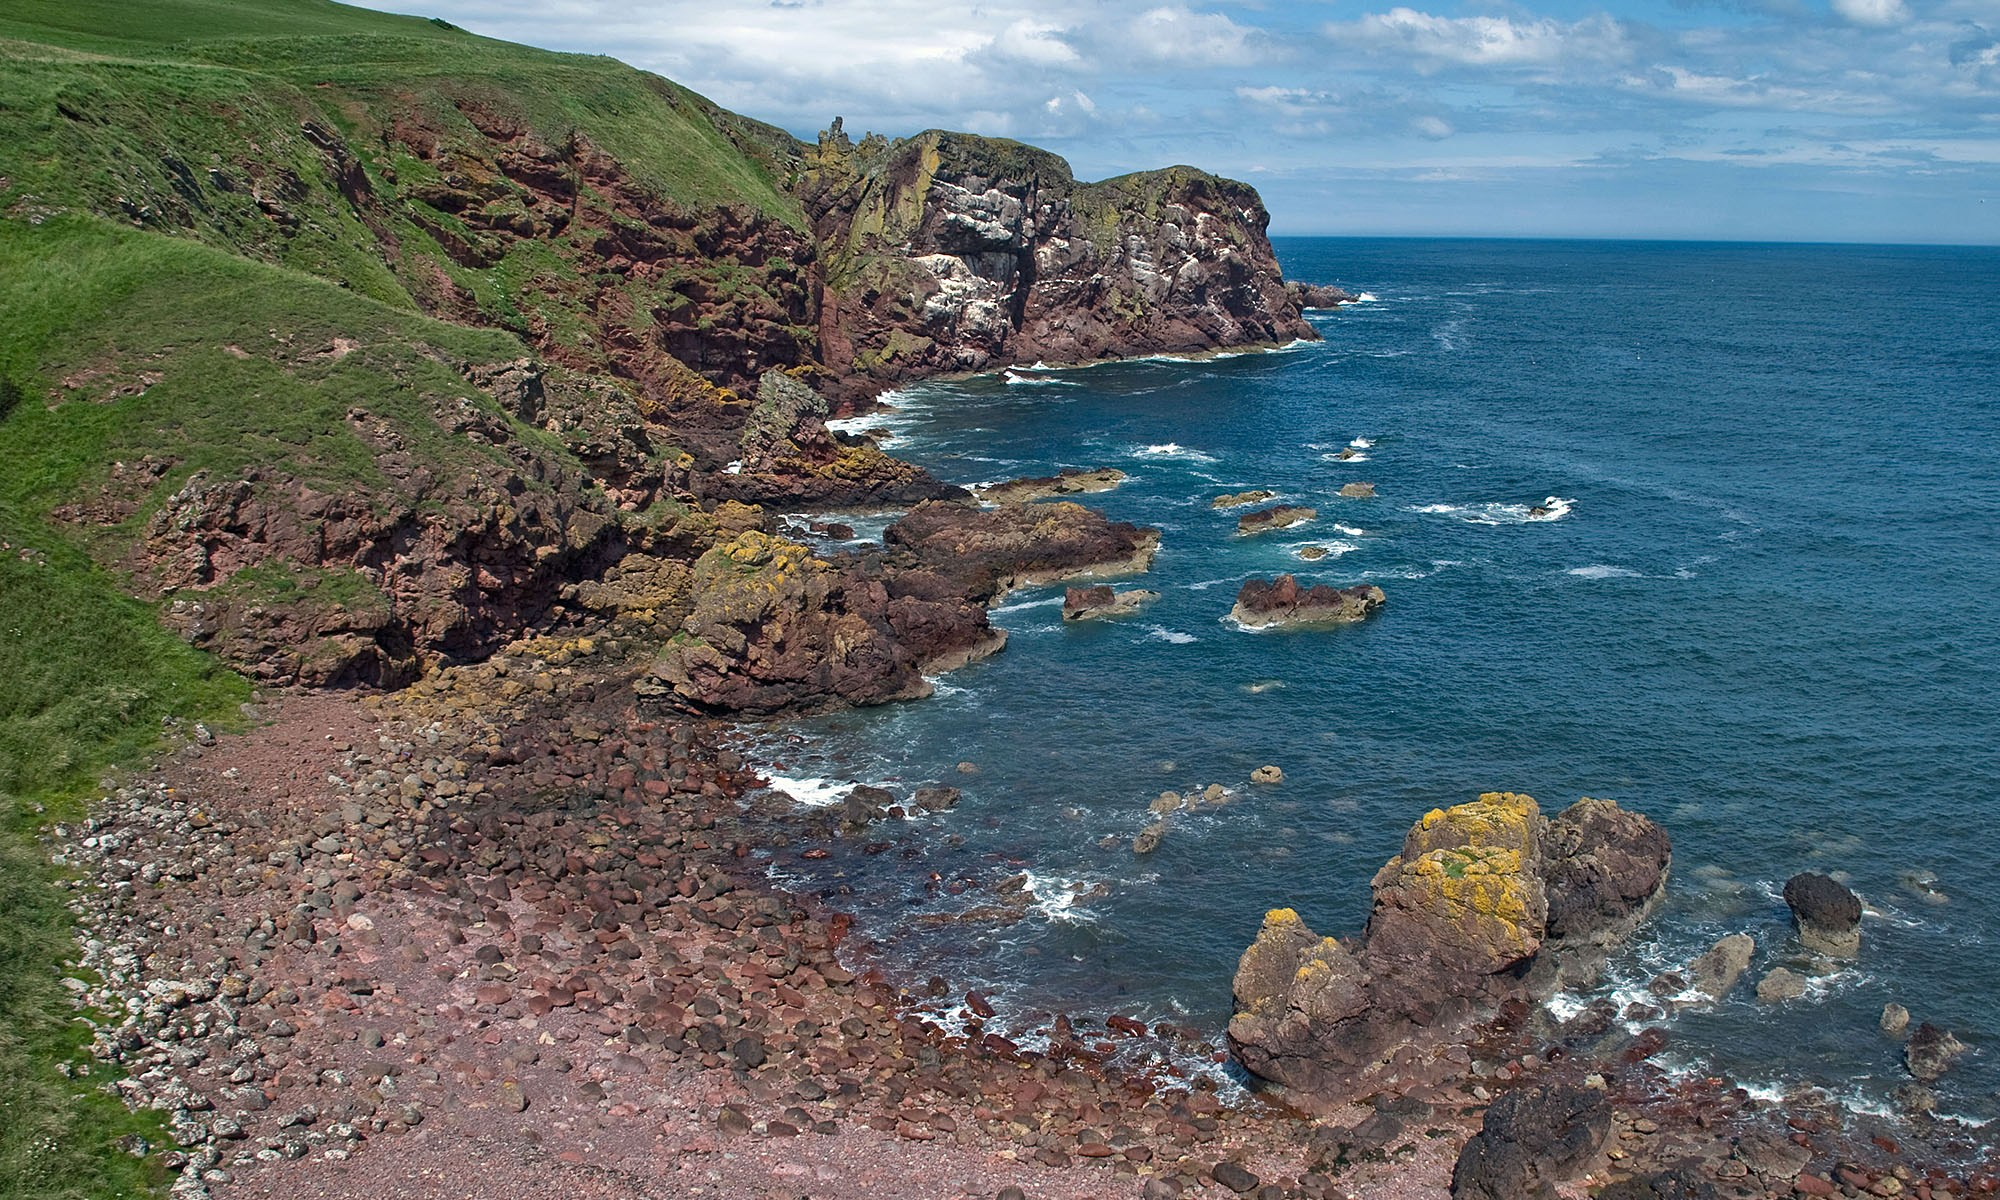 Coastline at St. Abb's Head